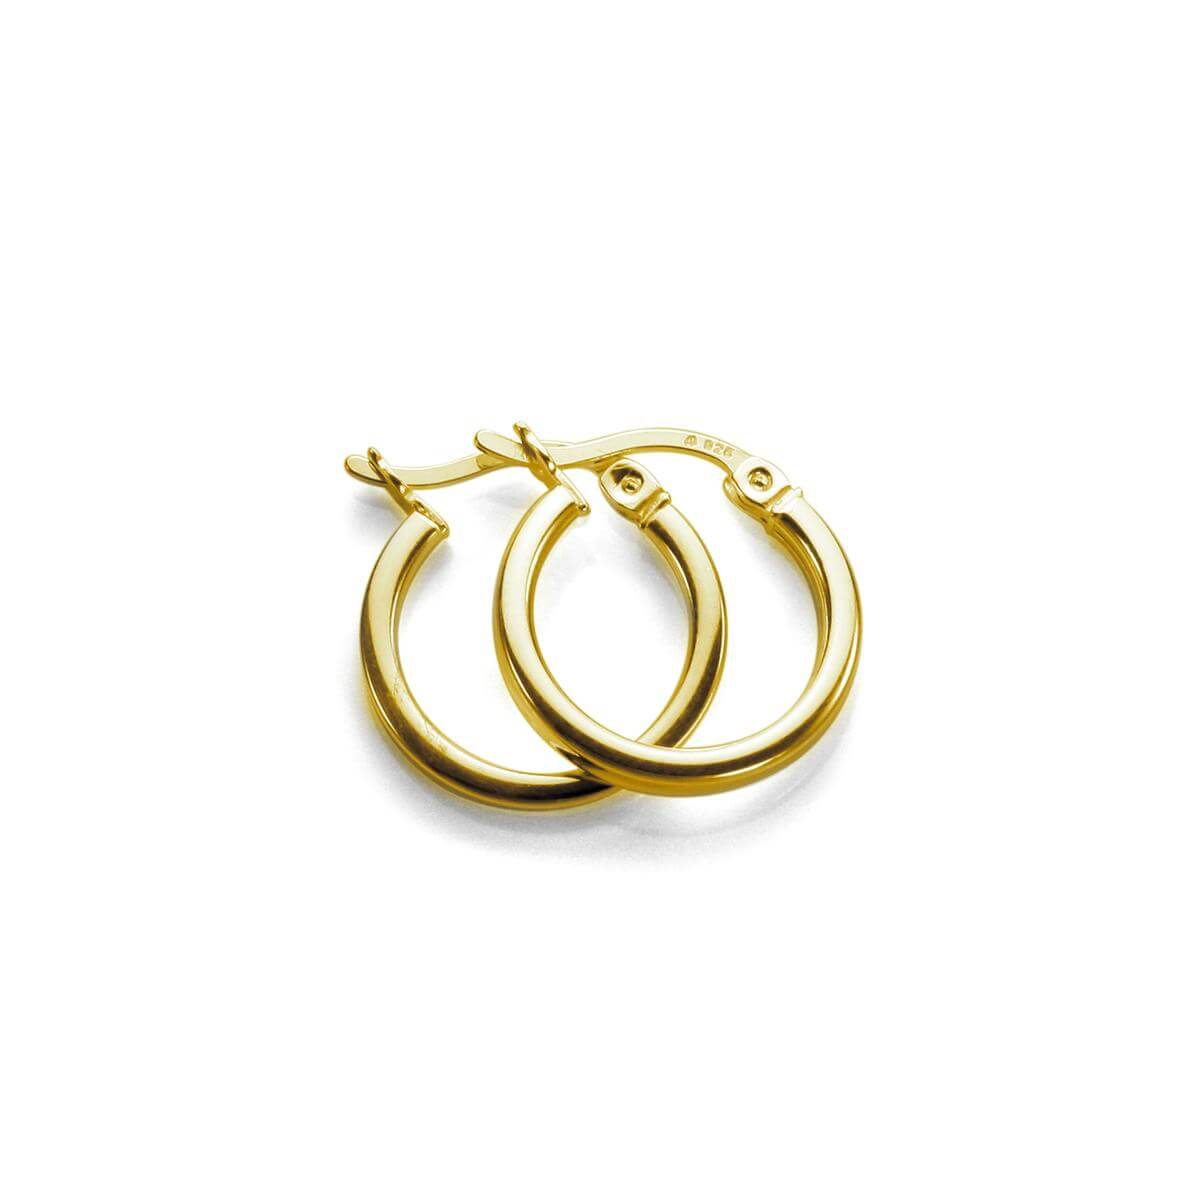 Gold Plated Sterling Silver 12mm Square Tube Hoop Earrings